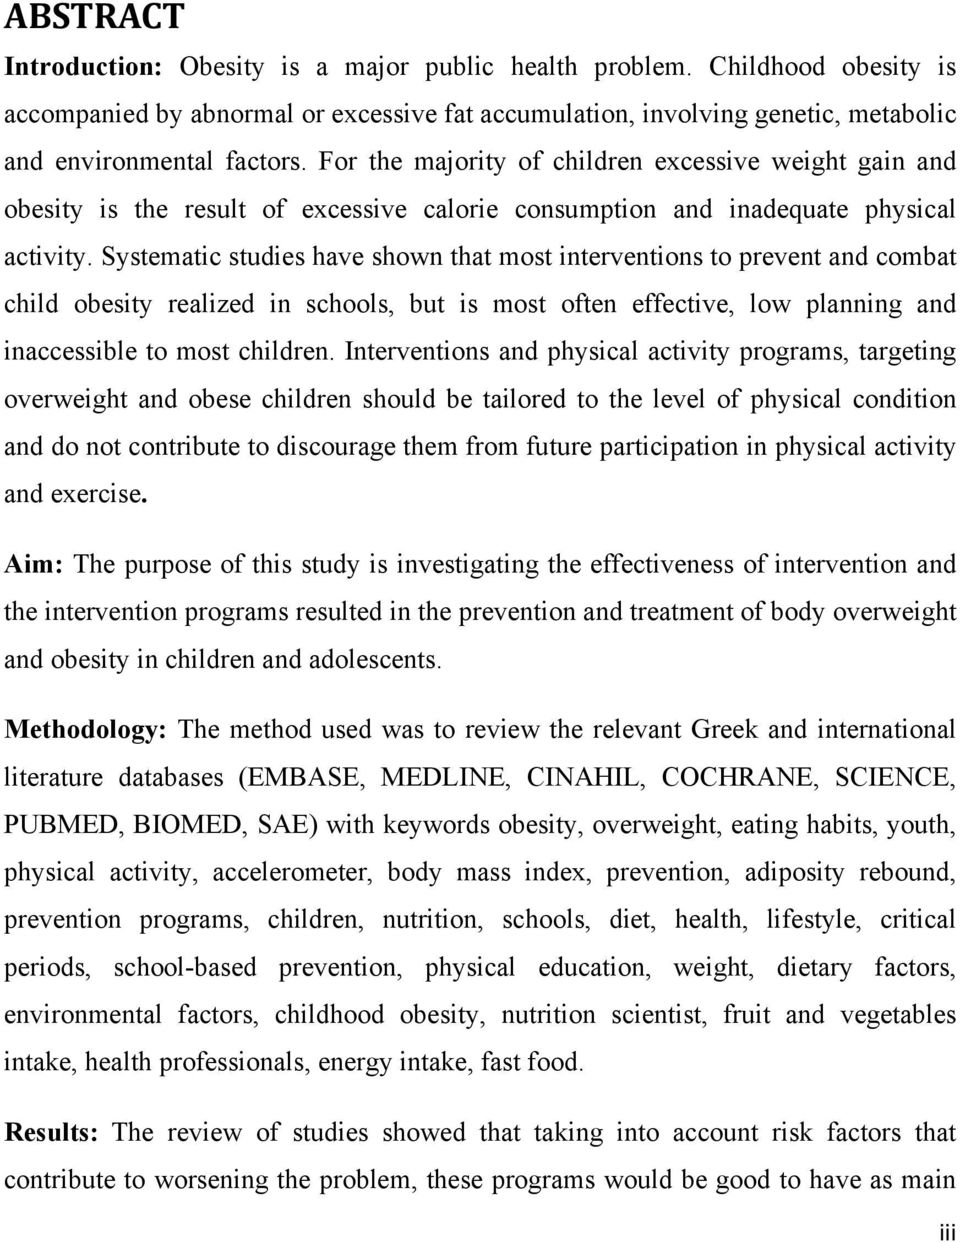 Systematic studies have shown that most interventions to prevent and combat child obesity realized in schools, but is most often effective, low planning and inaccessible to most children.